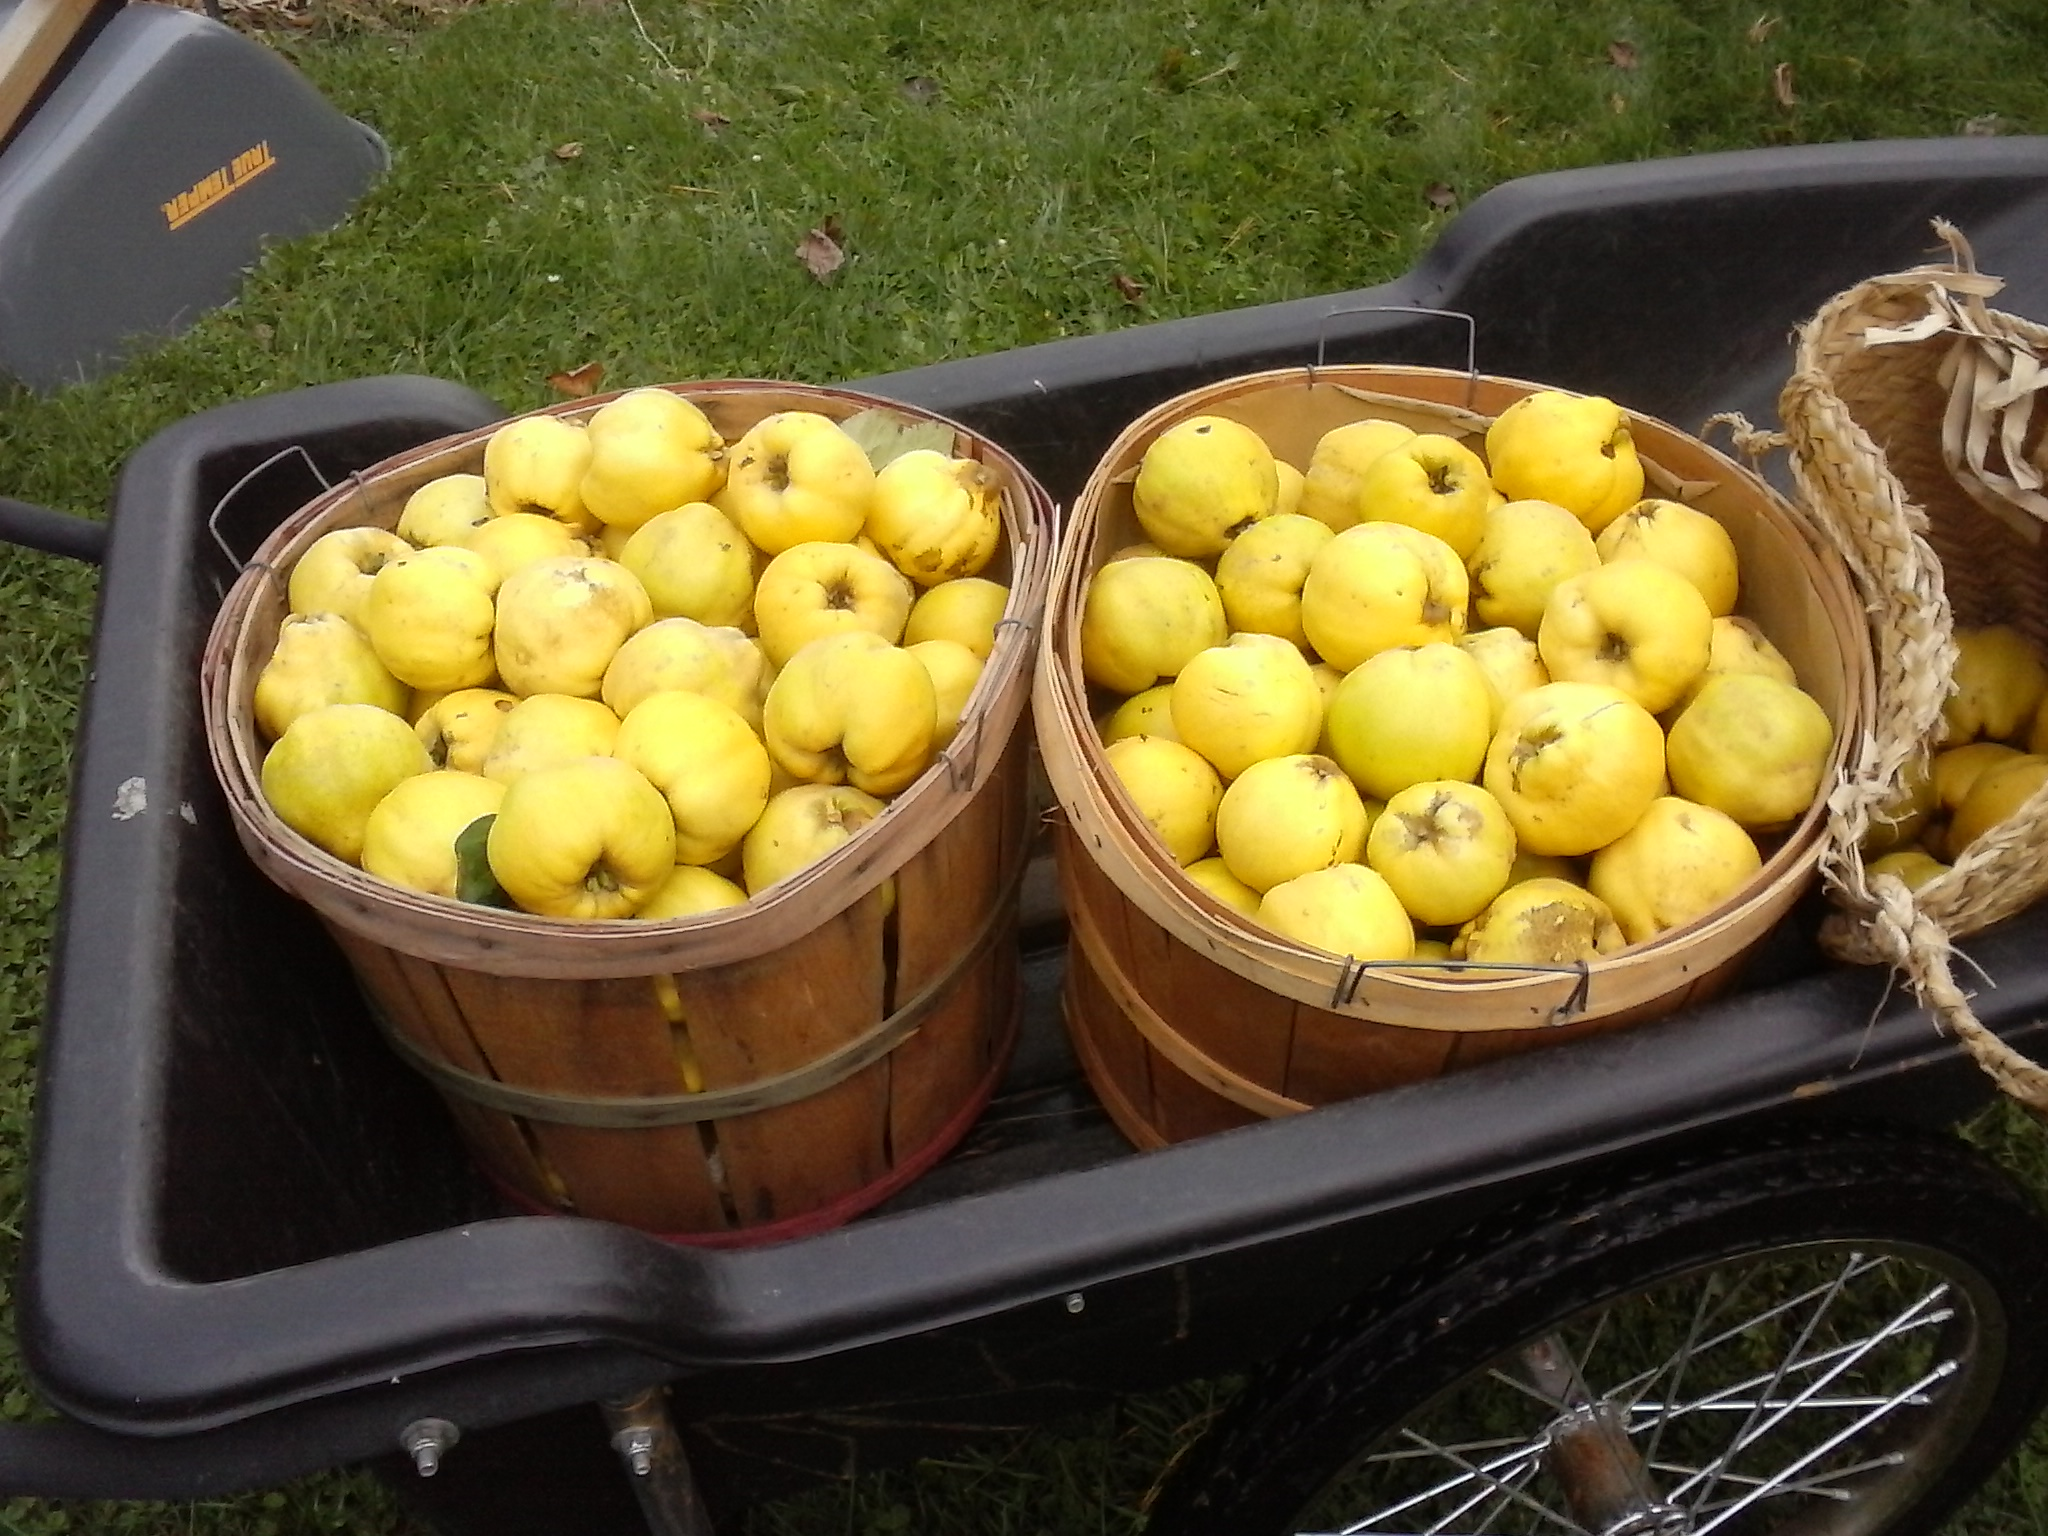 Quince, the quintessential Cooks fruit, though marginal hardiness for Wisoconsin. We found this out this year as all but one of our trees in our orchard experienced died from cold.